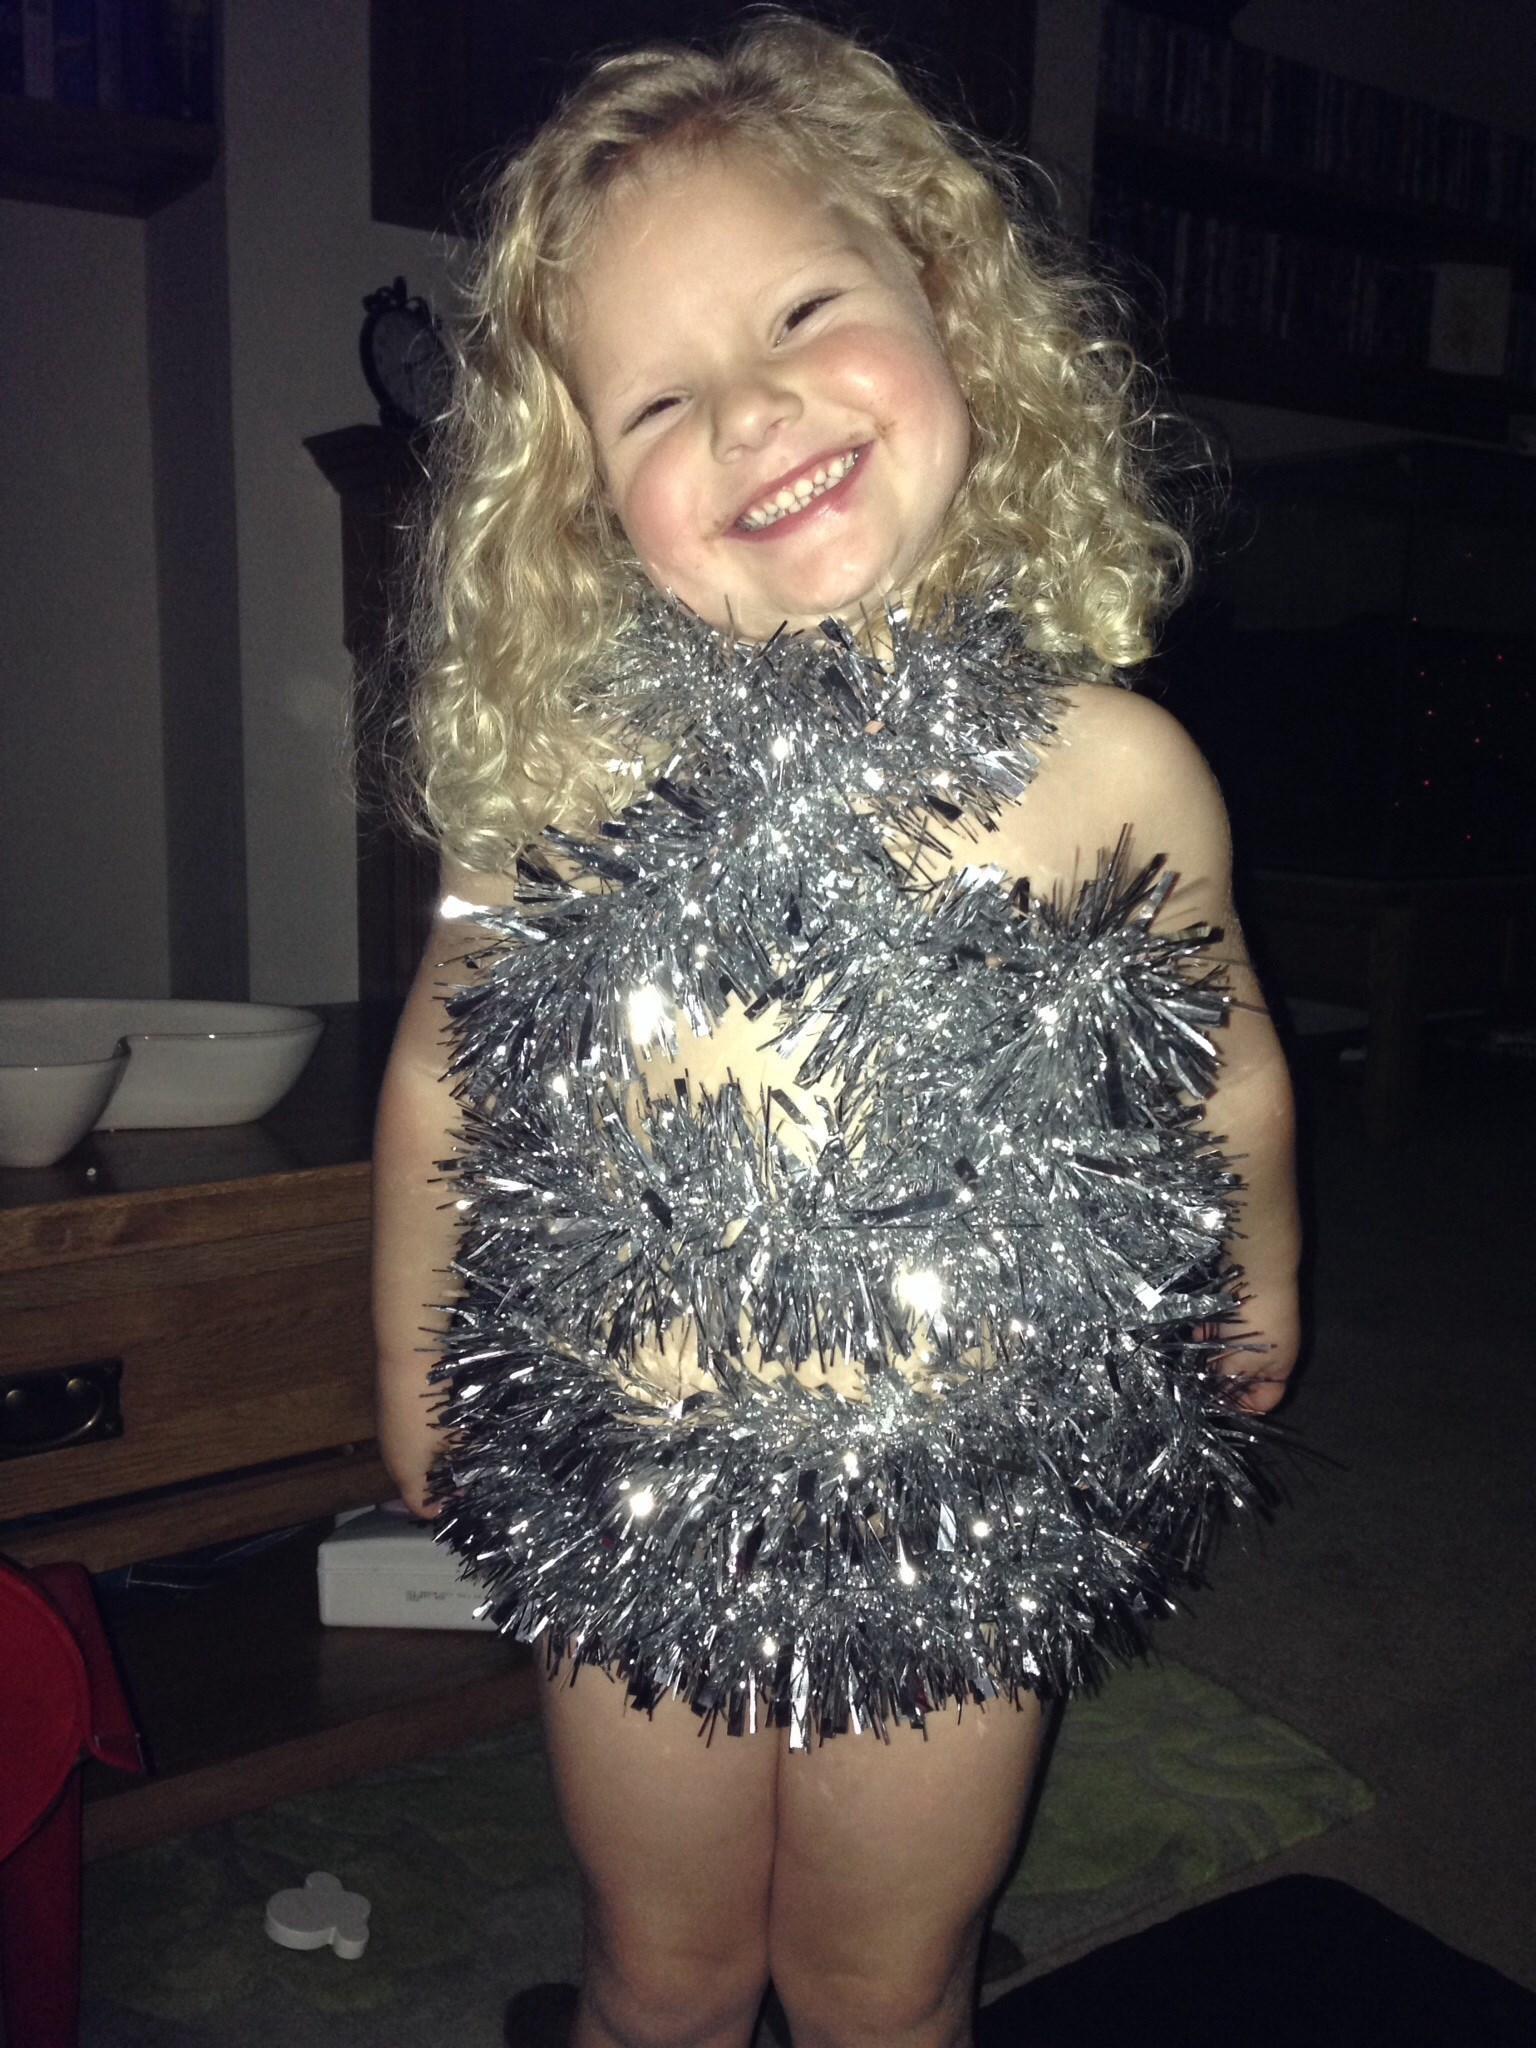 Your little Isobelle she has your zest for life xxx